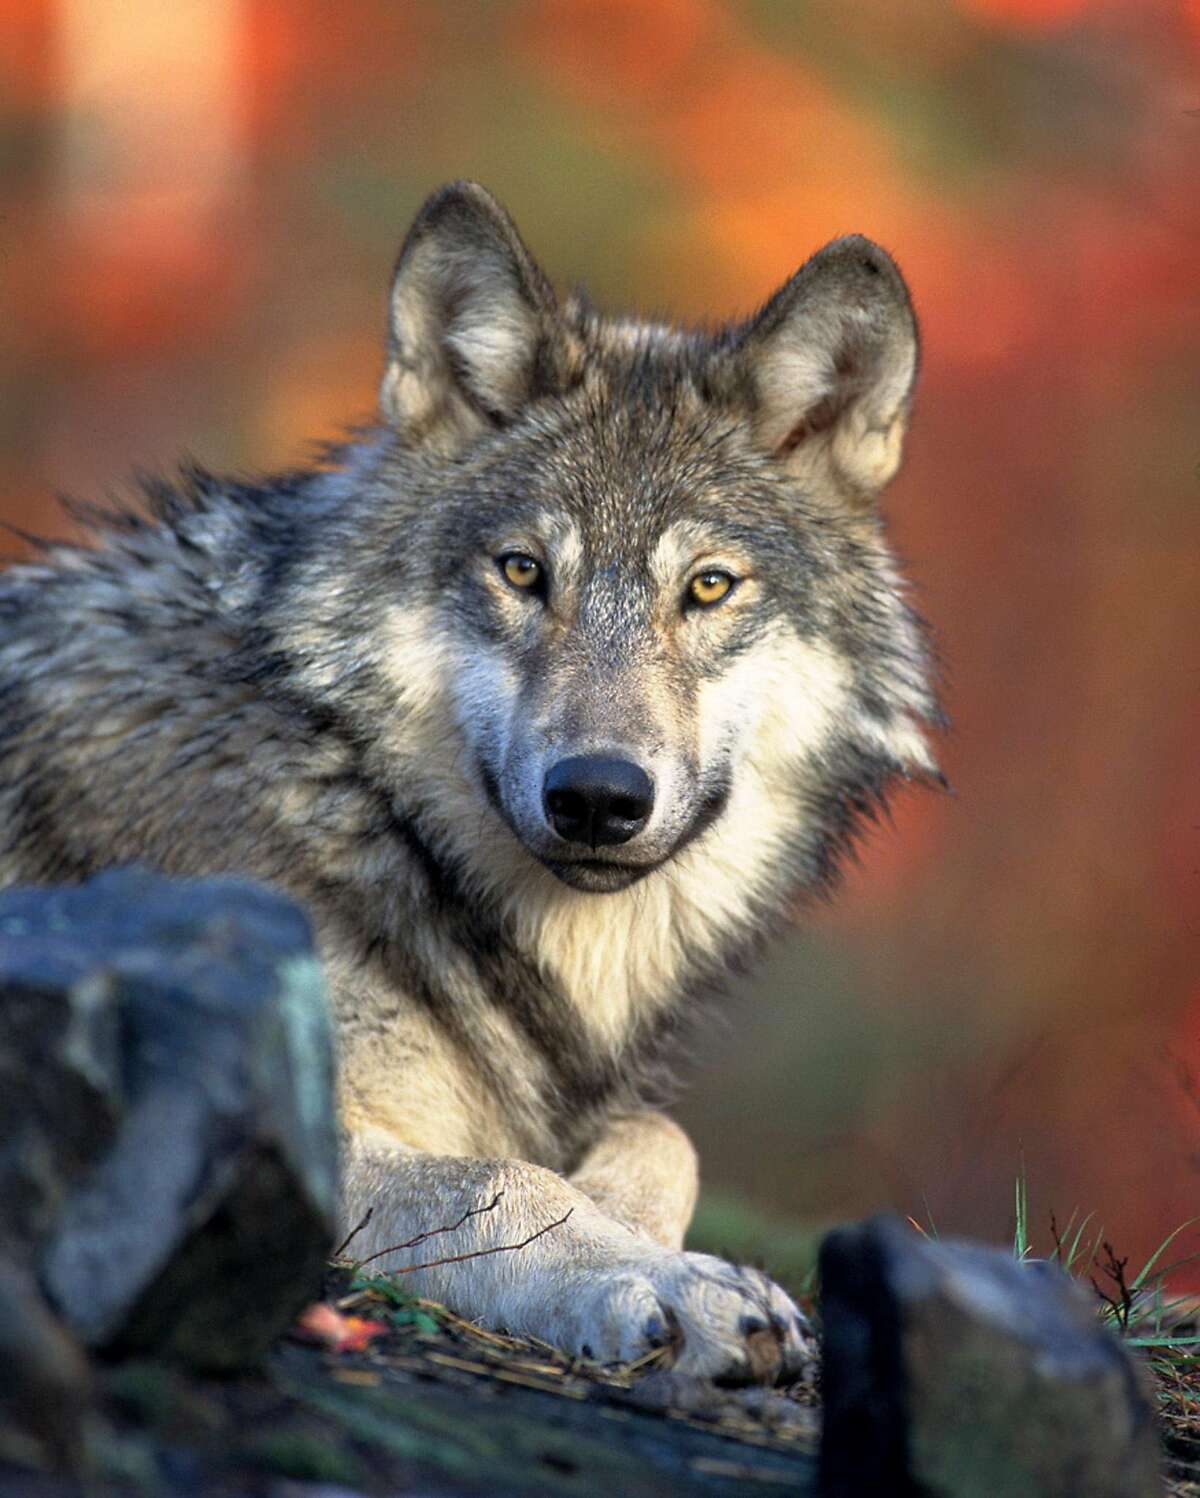 States will now be allowed to reclassify gray wolves as game or permit kills to protect livestock.